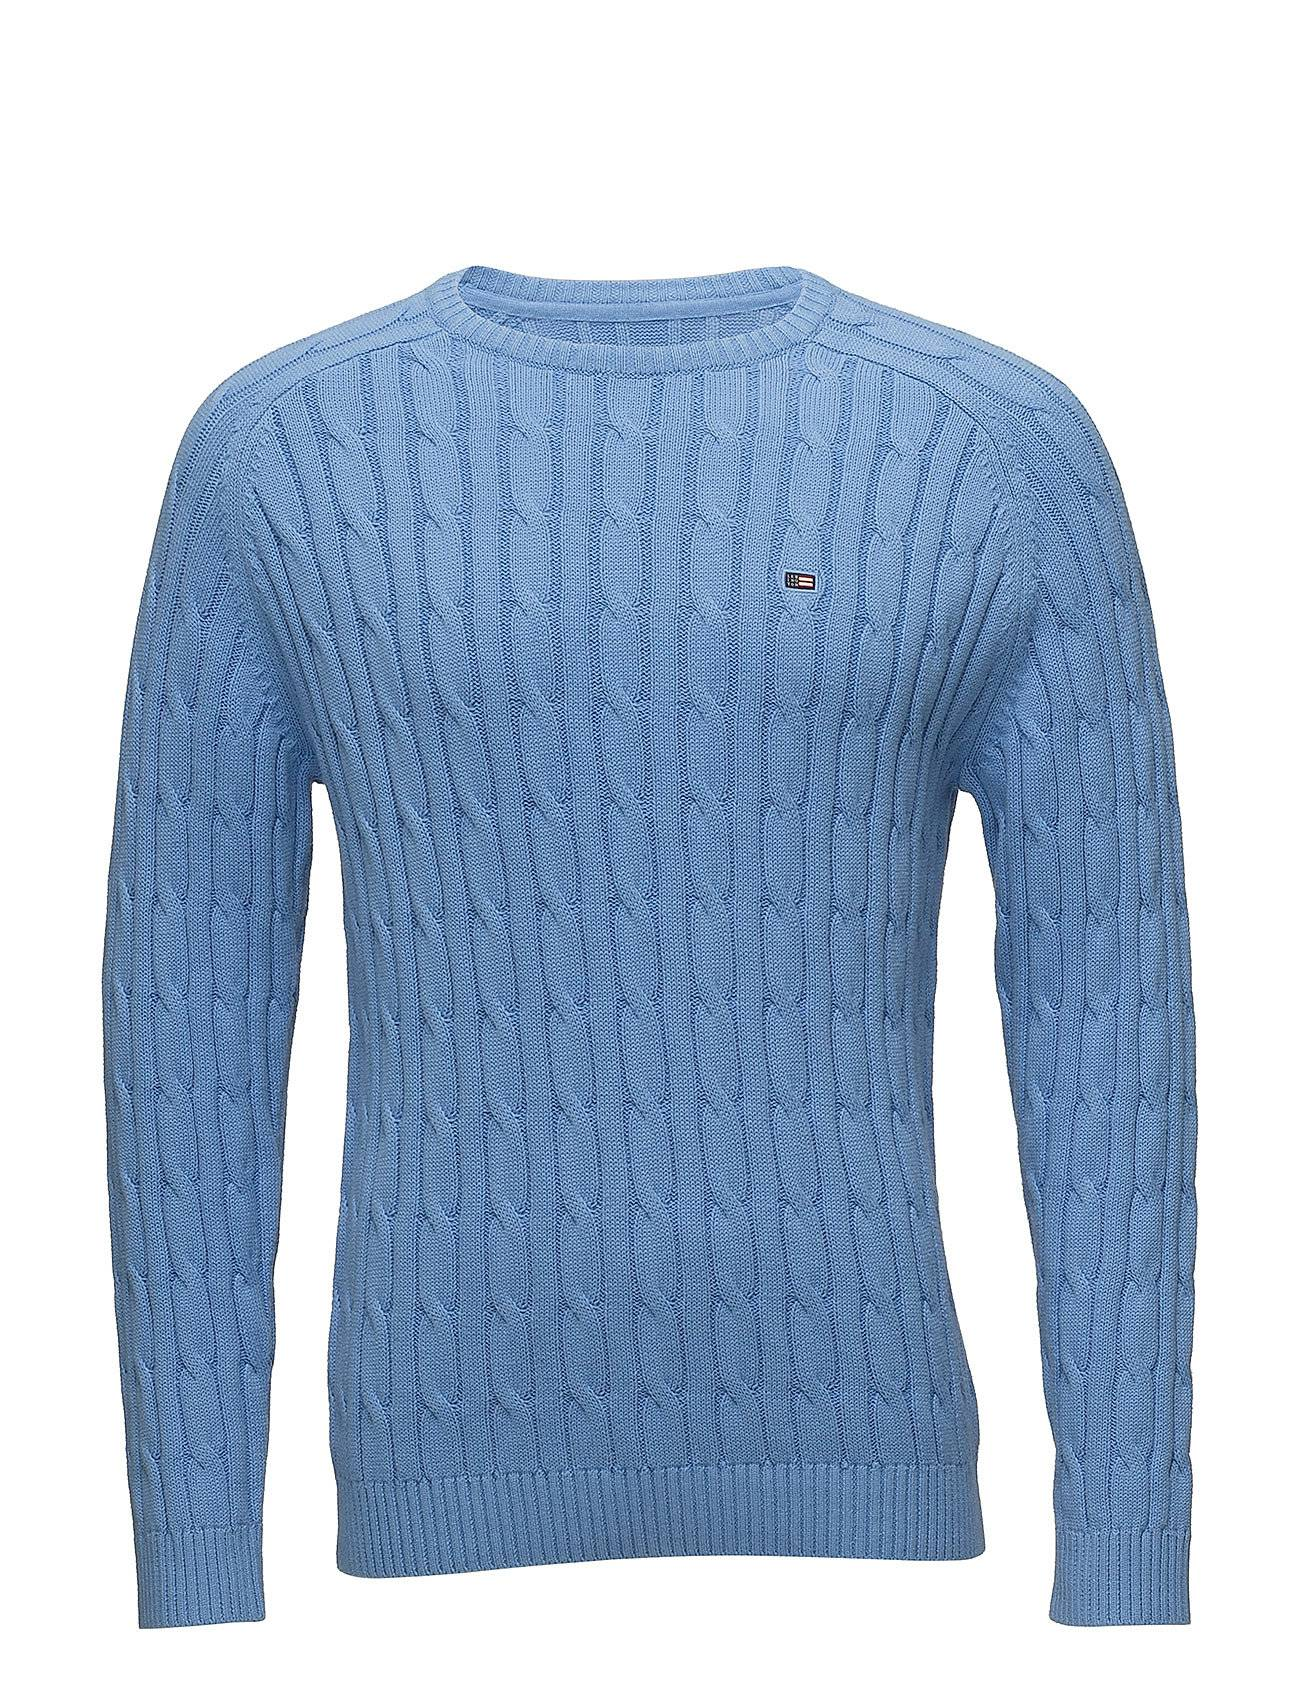 Lexington Clothing Andrew Cotton Cable Sweater